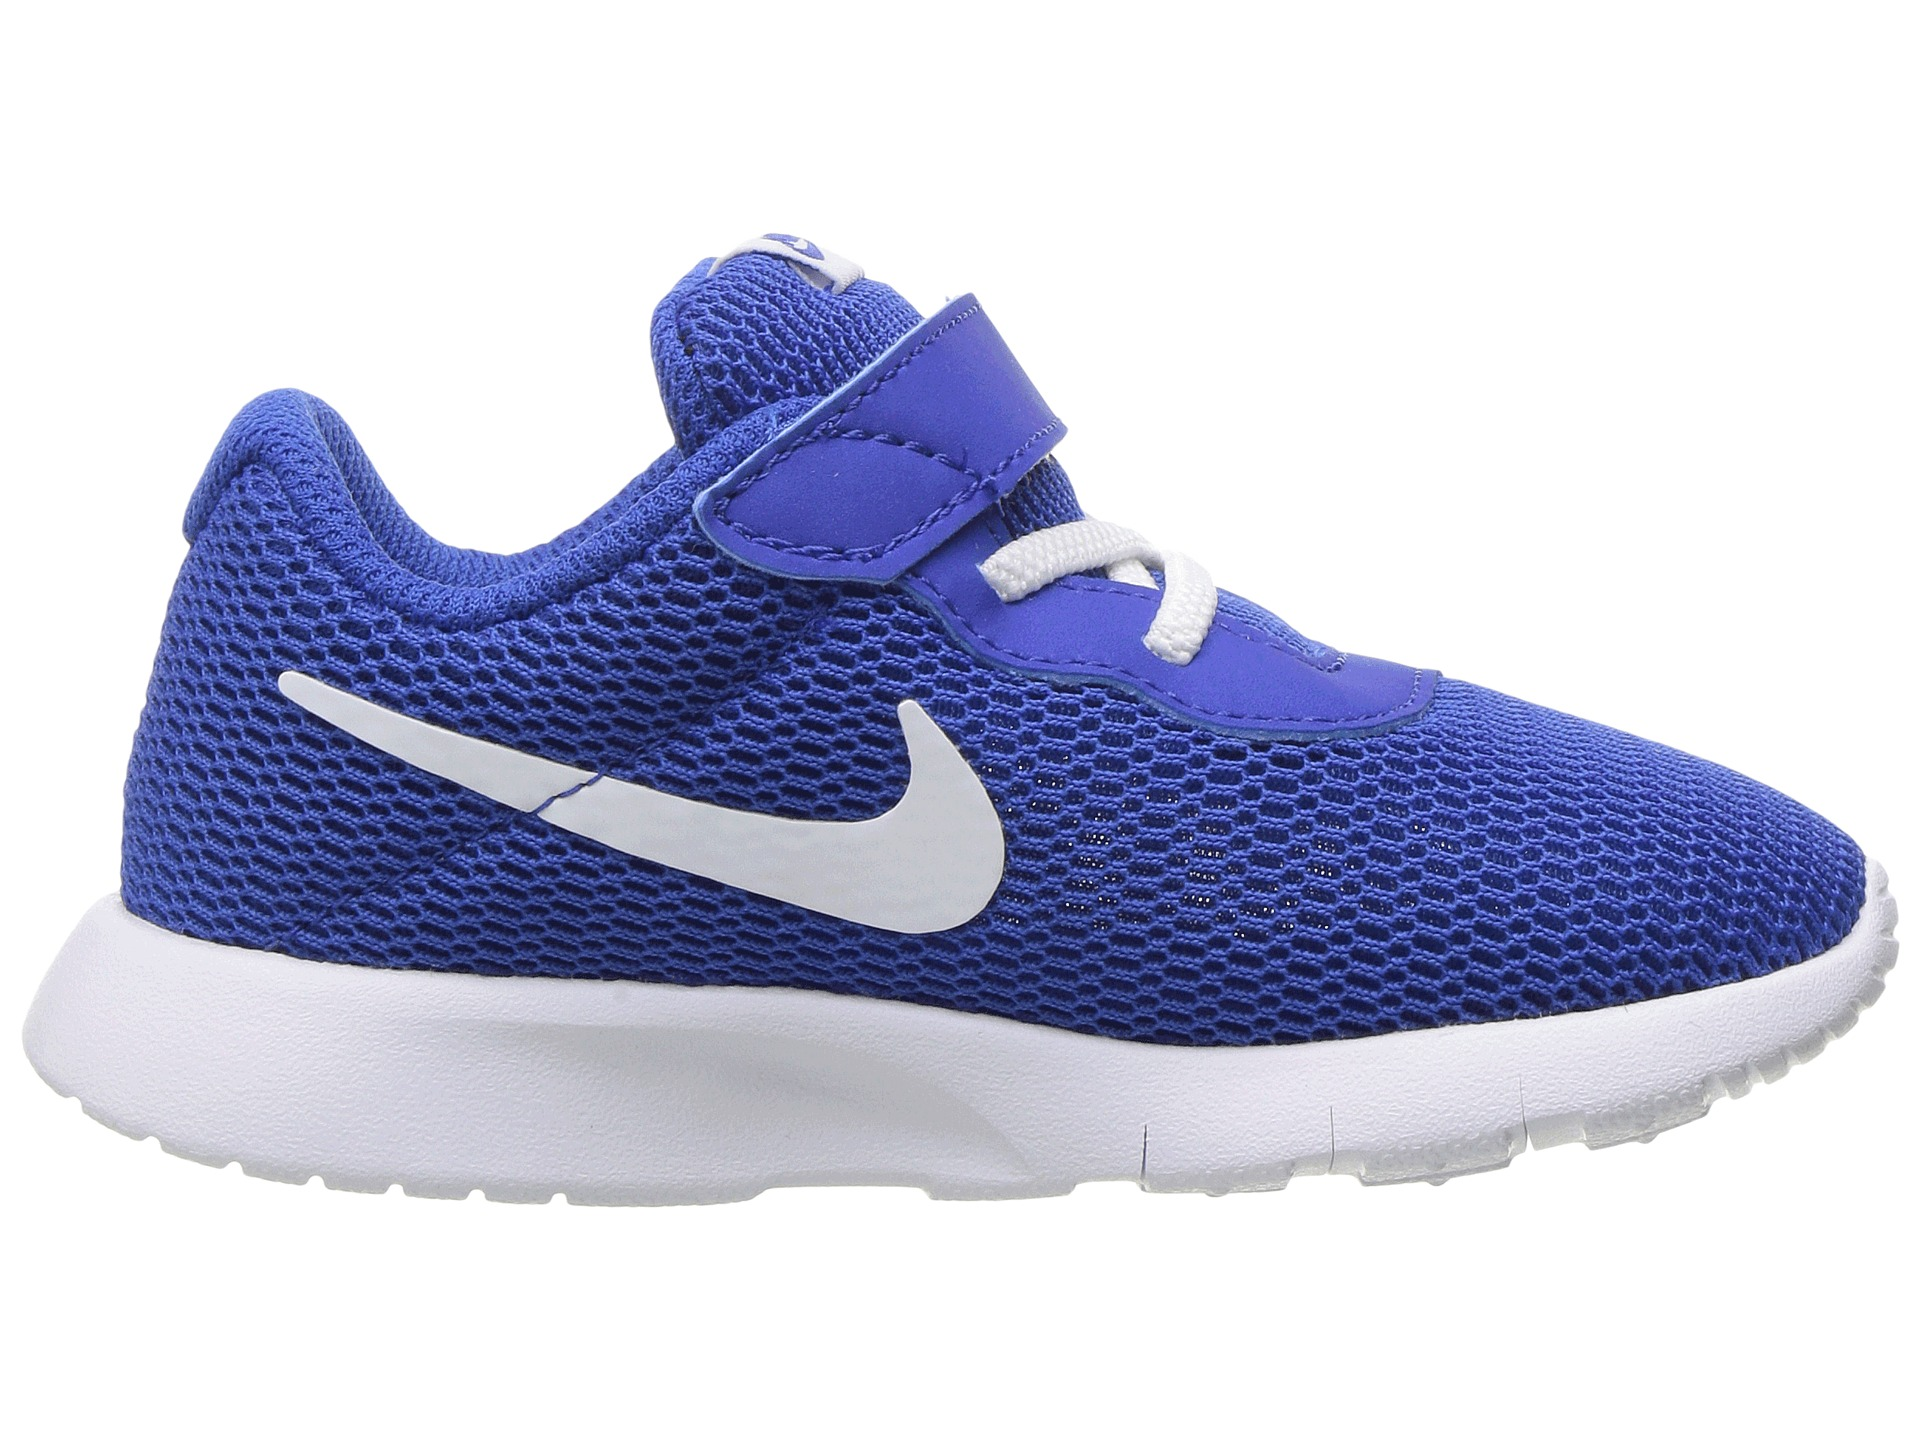 reputable site 48da0 d2346 Nike Tanjun Dsw Running Shoe Fitter